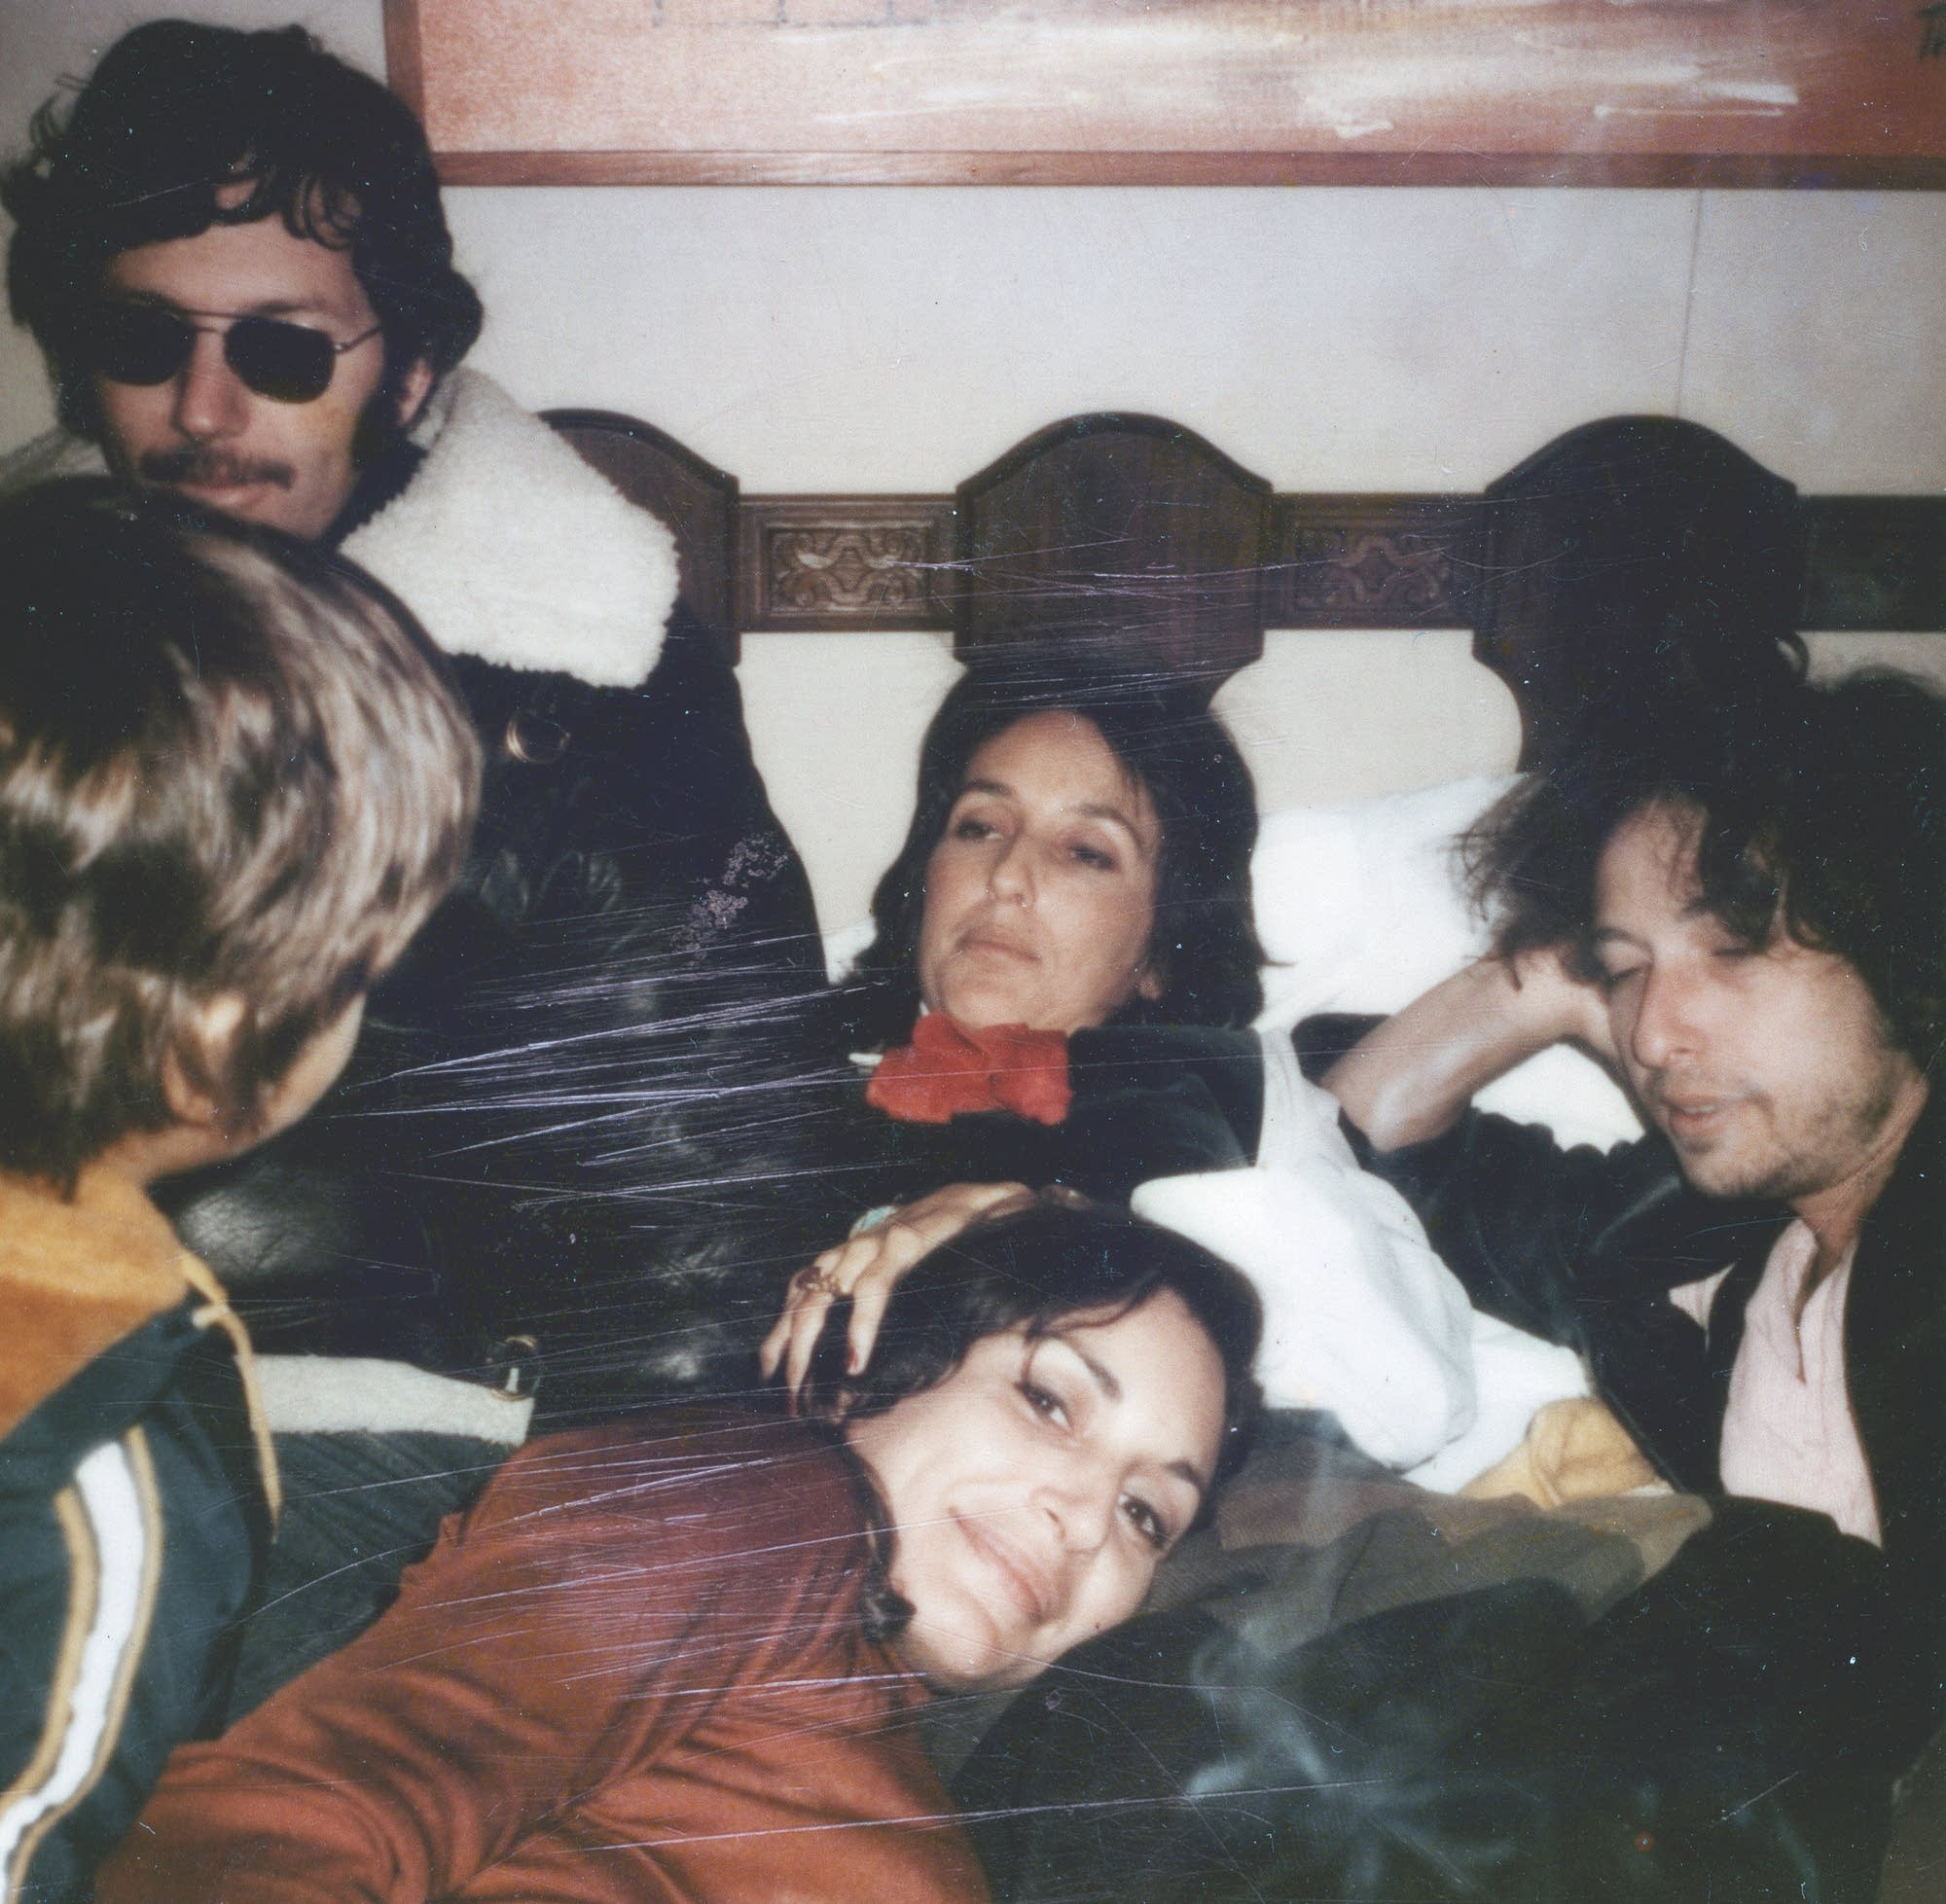 Louie Kemp, Joan Baez, and Bob Dylan relax.